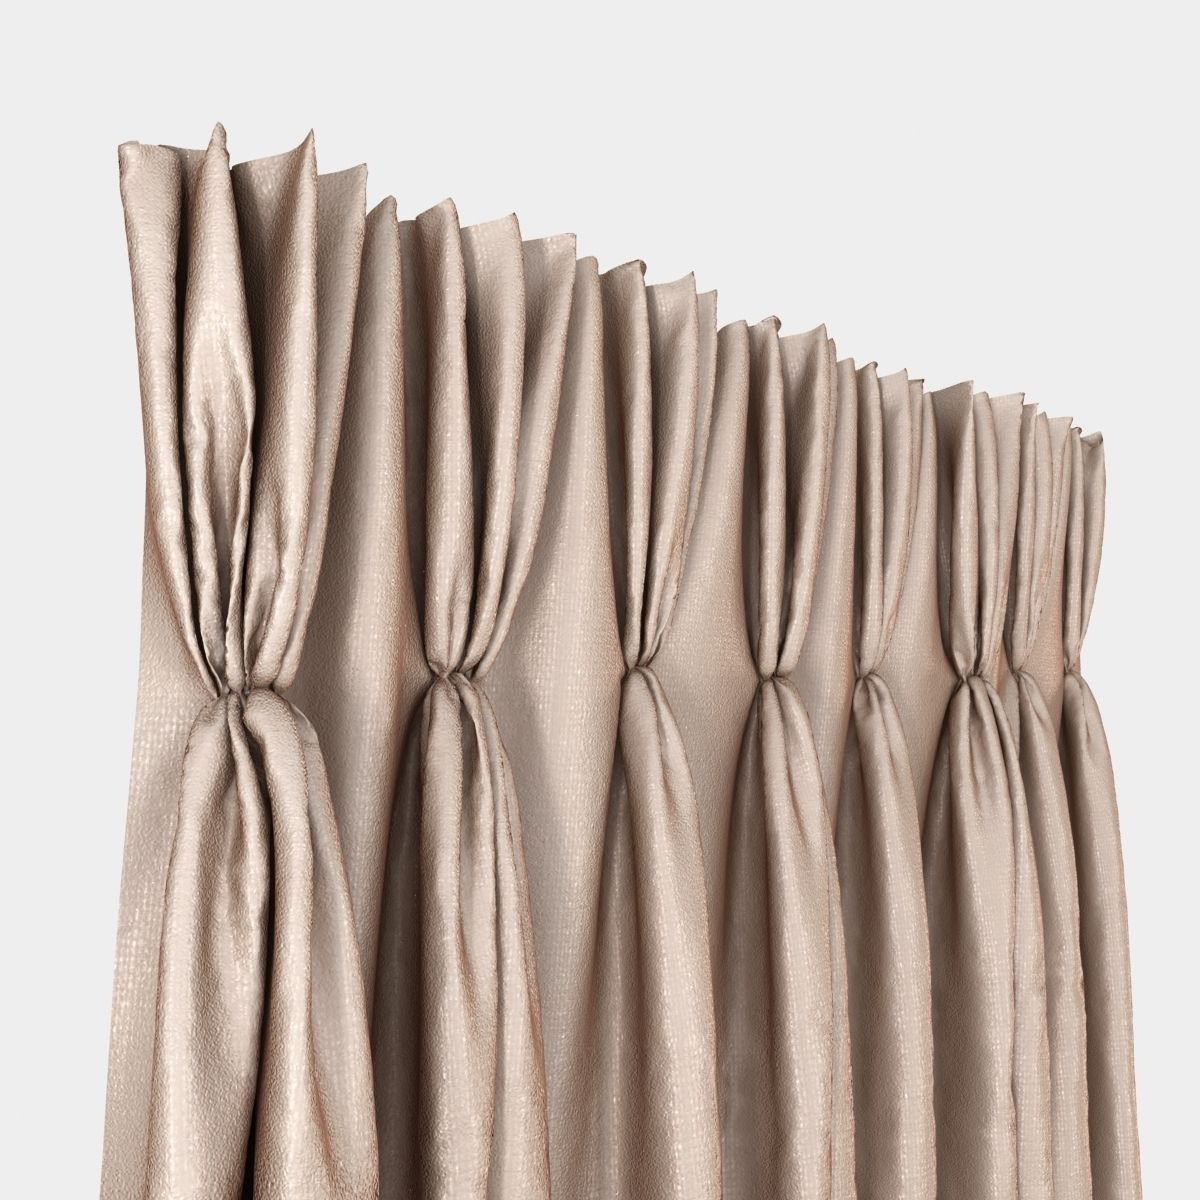 3D Pinch Pleat Curtain | CGTrader